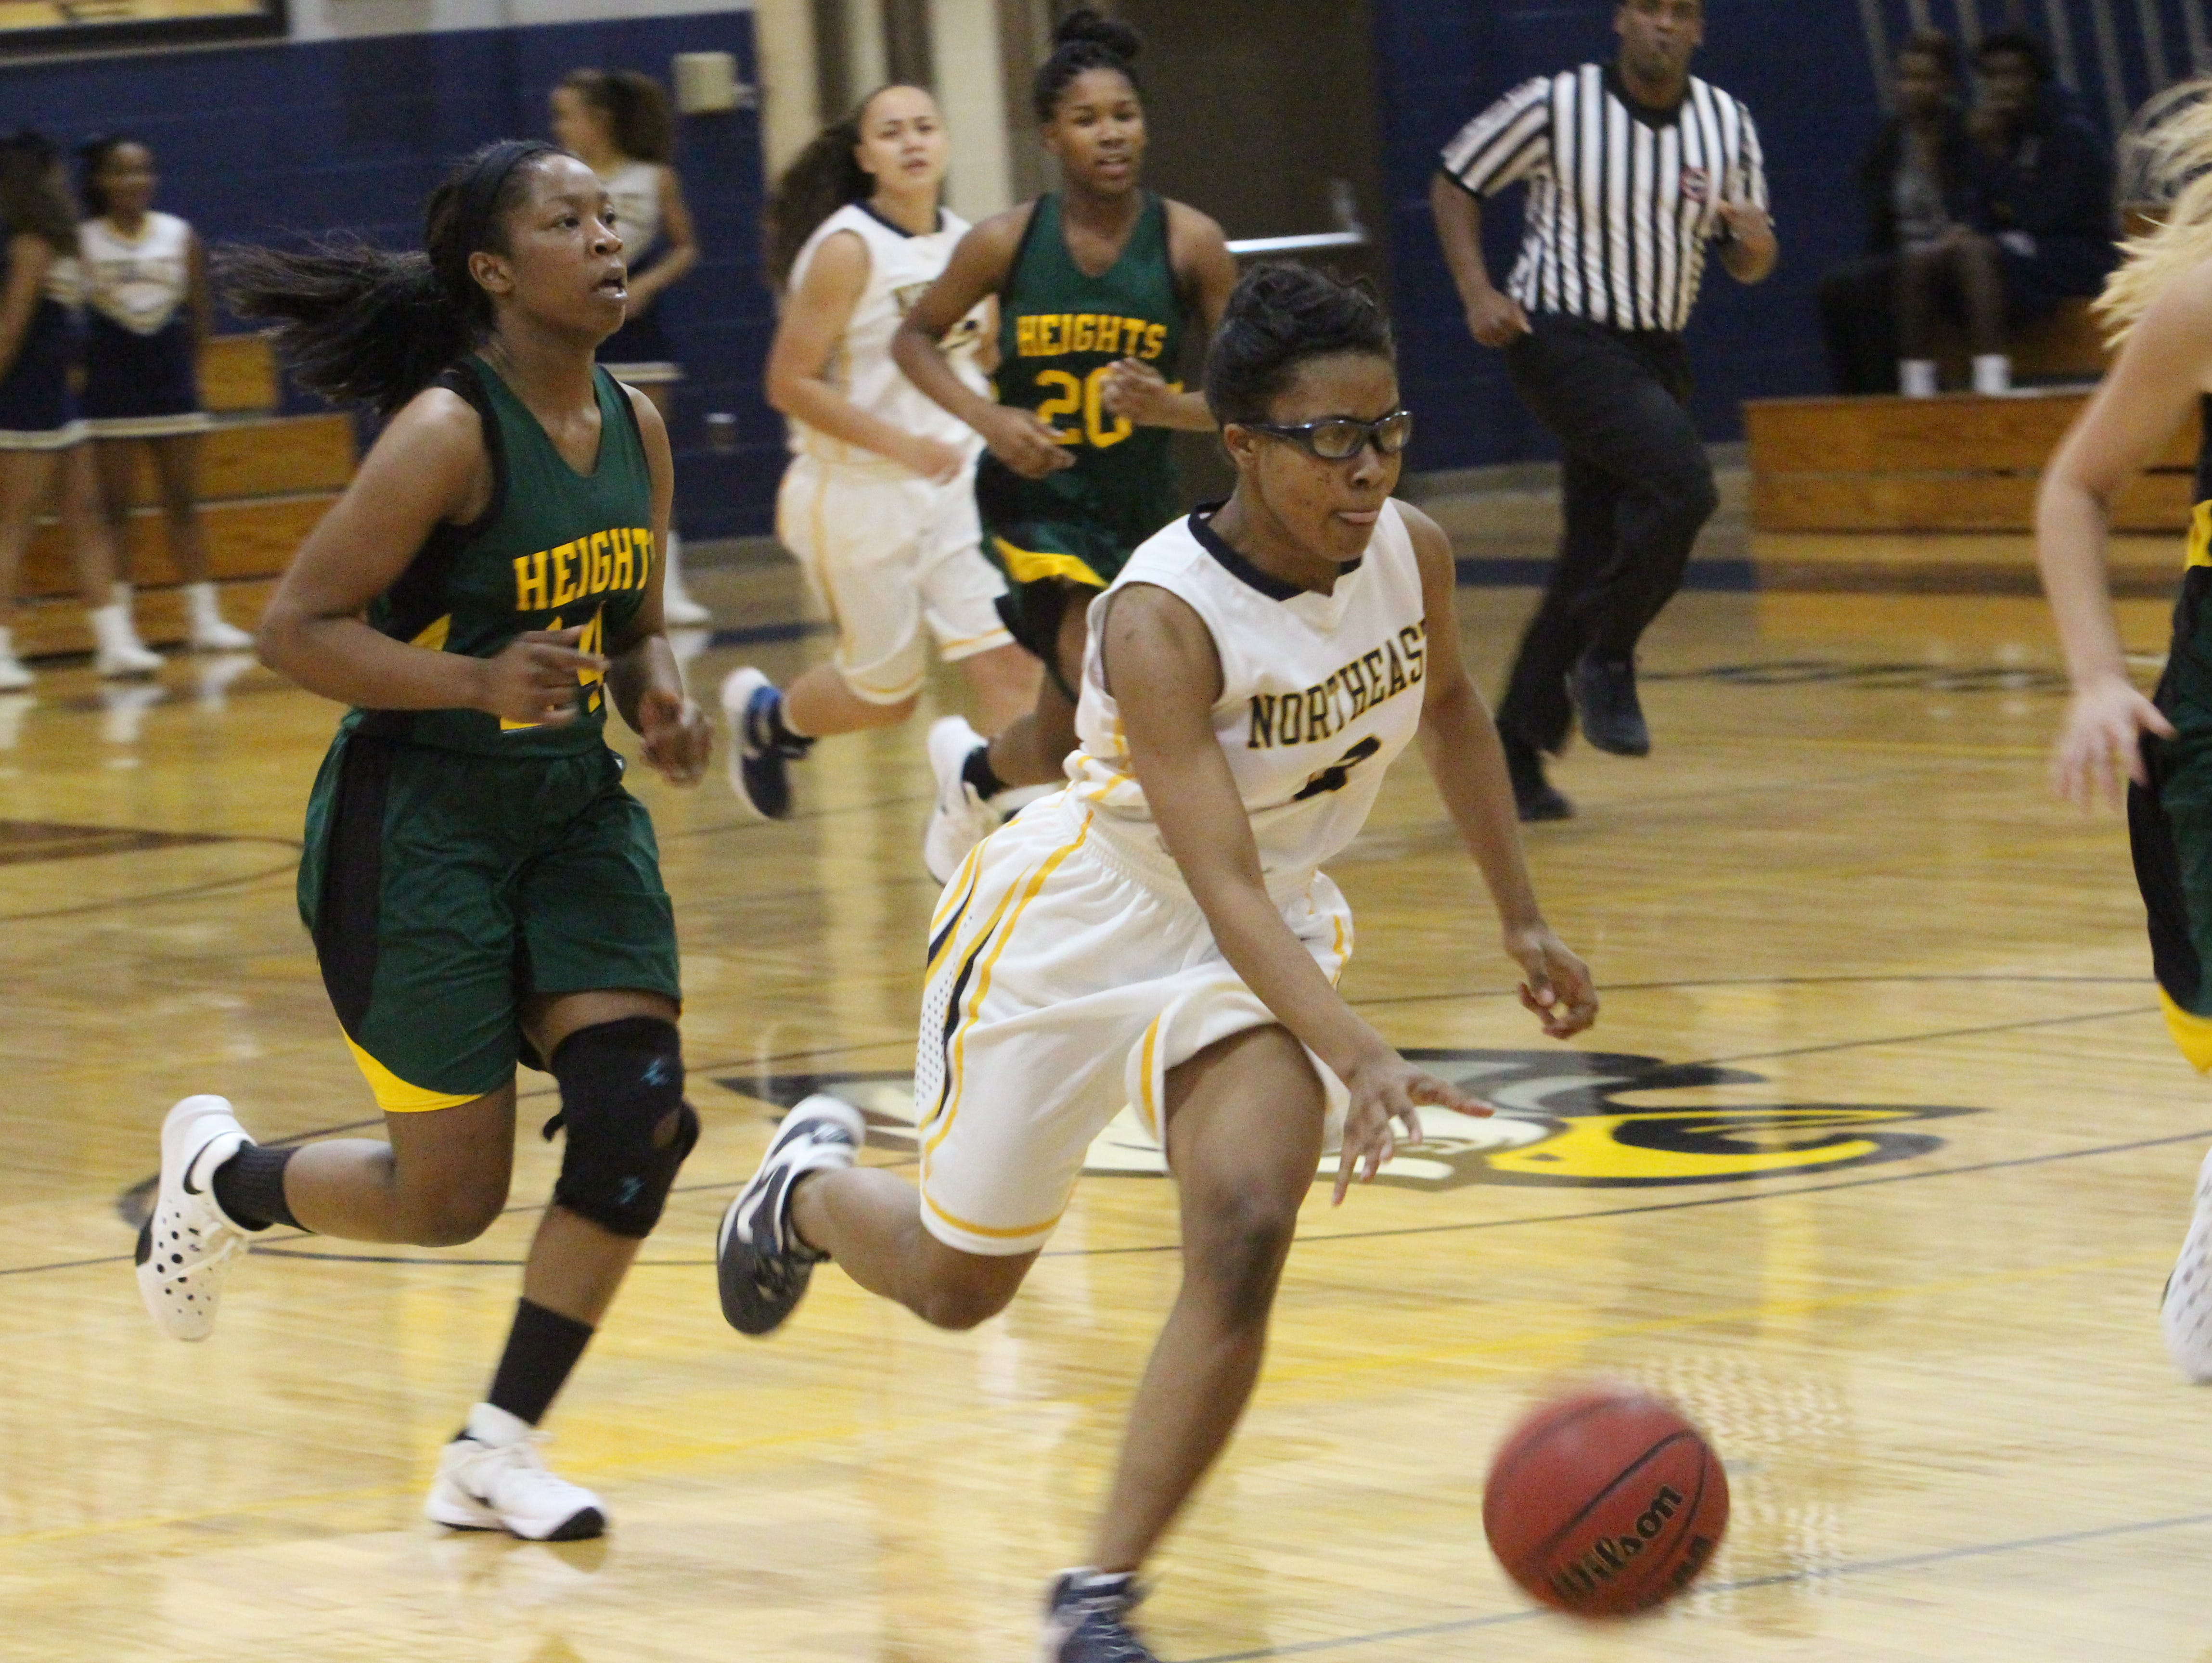 Northeast's Essence Brown dribbles down the court on a fastbreak during the first quarter of their game against University Heights Academy (Ky.) Thursday night at Northeast High School.